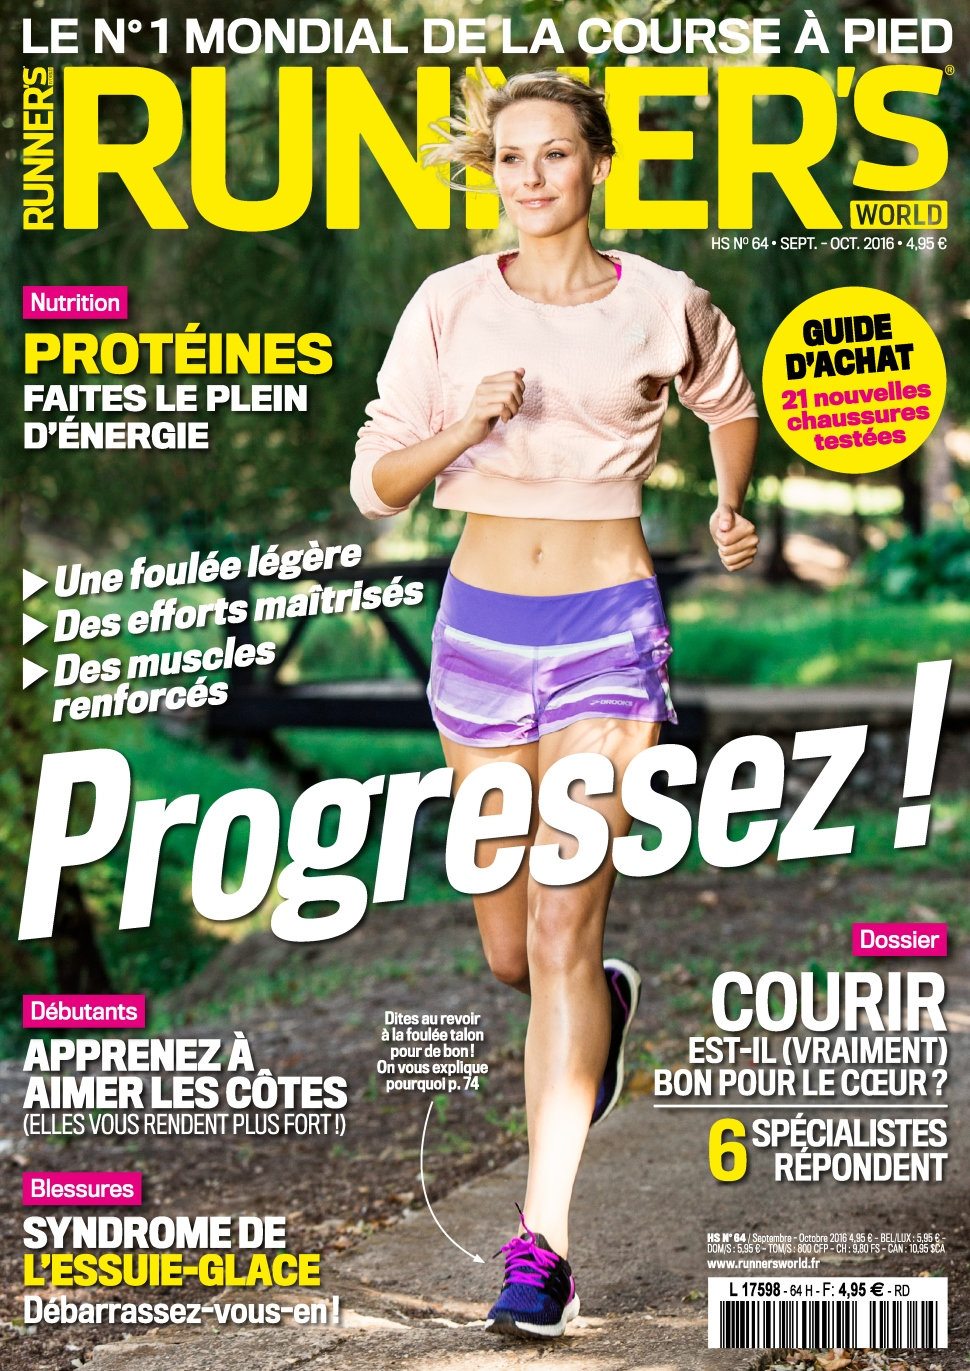 Runner's World N°64 - Septembre/Octobre 2016